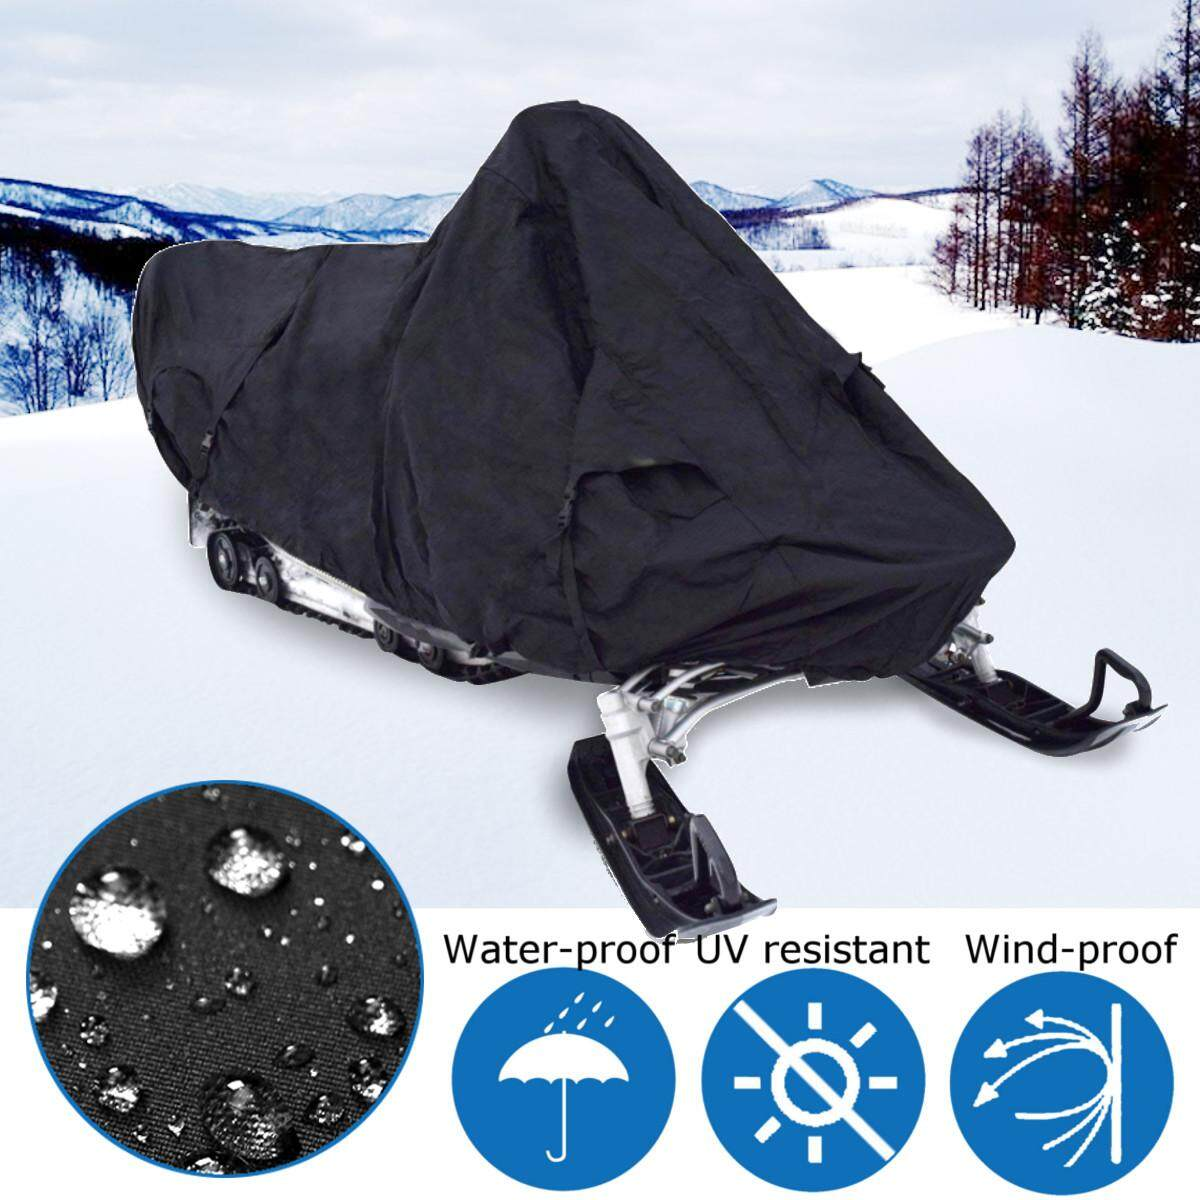 Budge Sportsman Trailerable Snowmobile Cover Fits Snowmobiles 130 Long X 51 Wide X 48 High, Sm-7 - Intl By Audew.